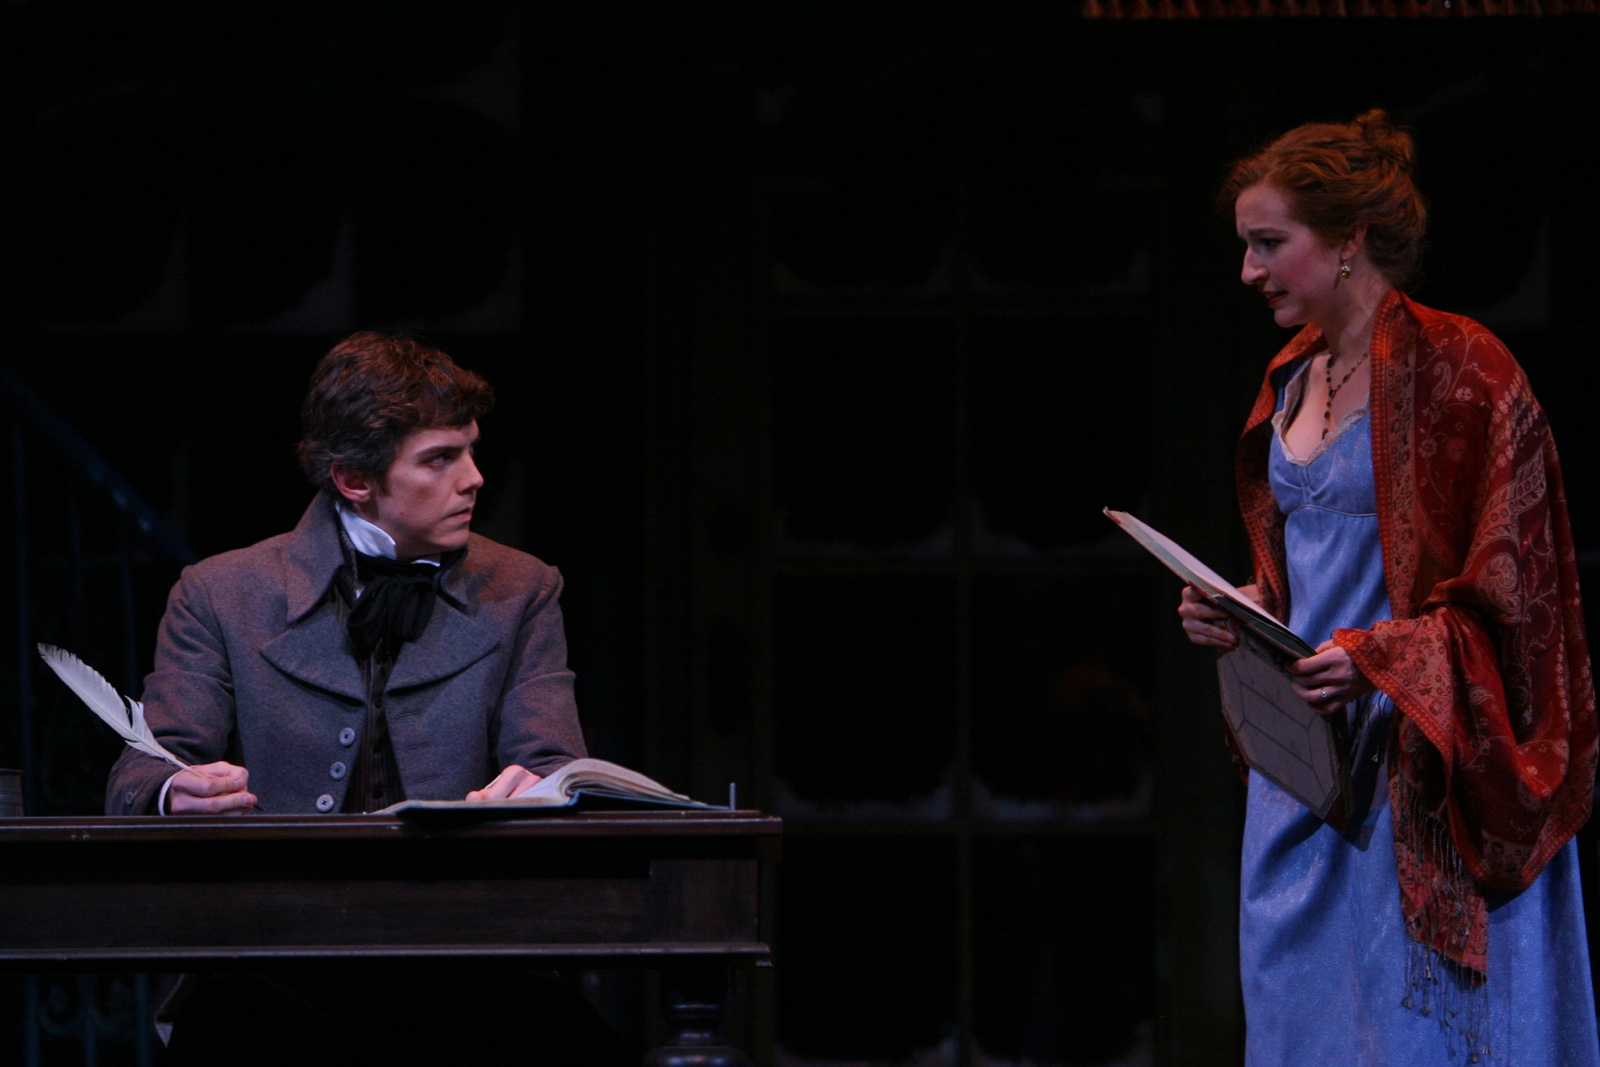 Jarrod Zimmerman (Young Scrooge) with Nora Fiffer (Belle) in A Christmas Carol